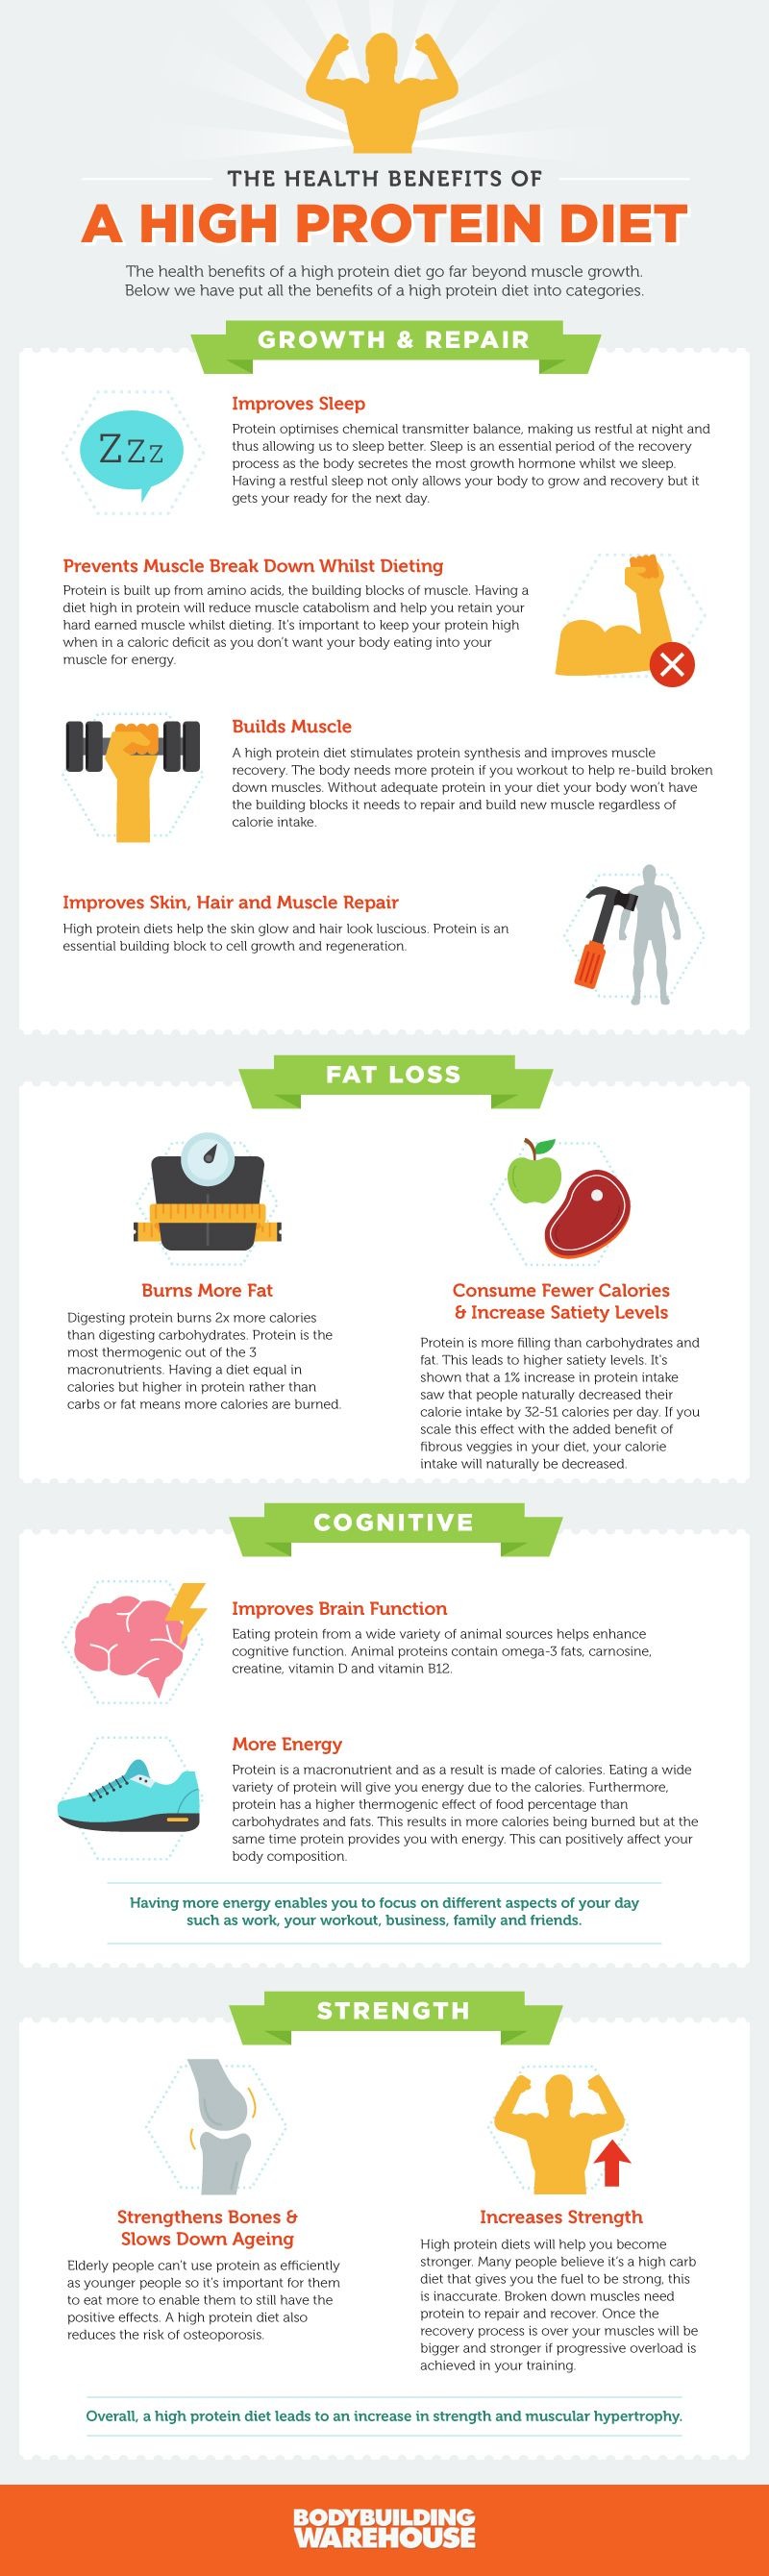 Does leptin help you lose weight image 2